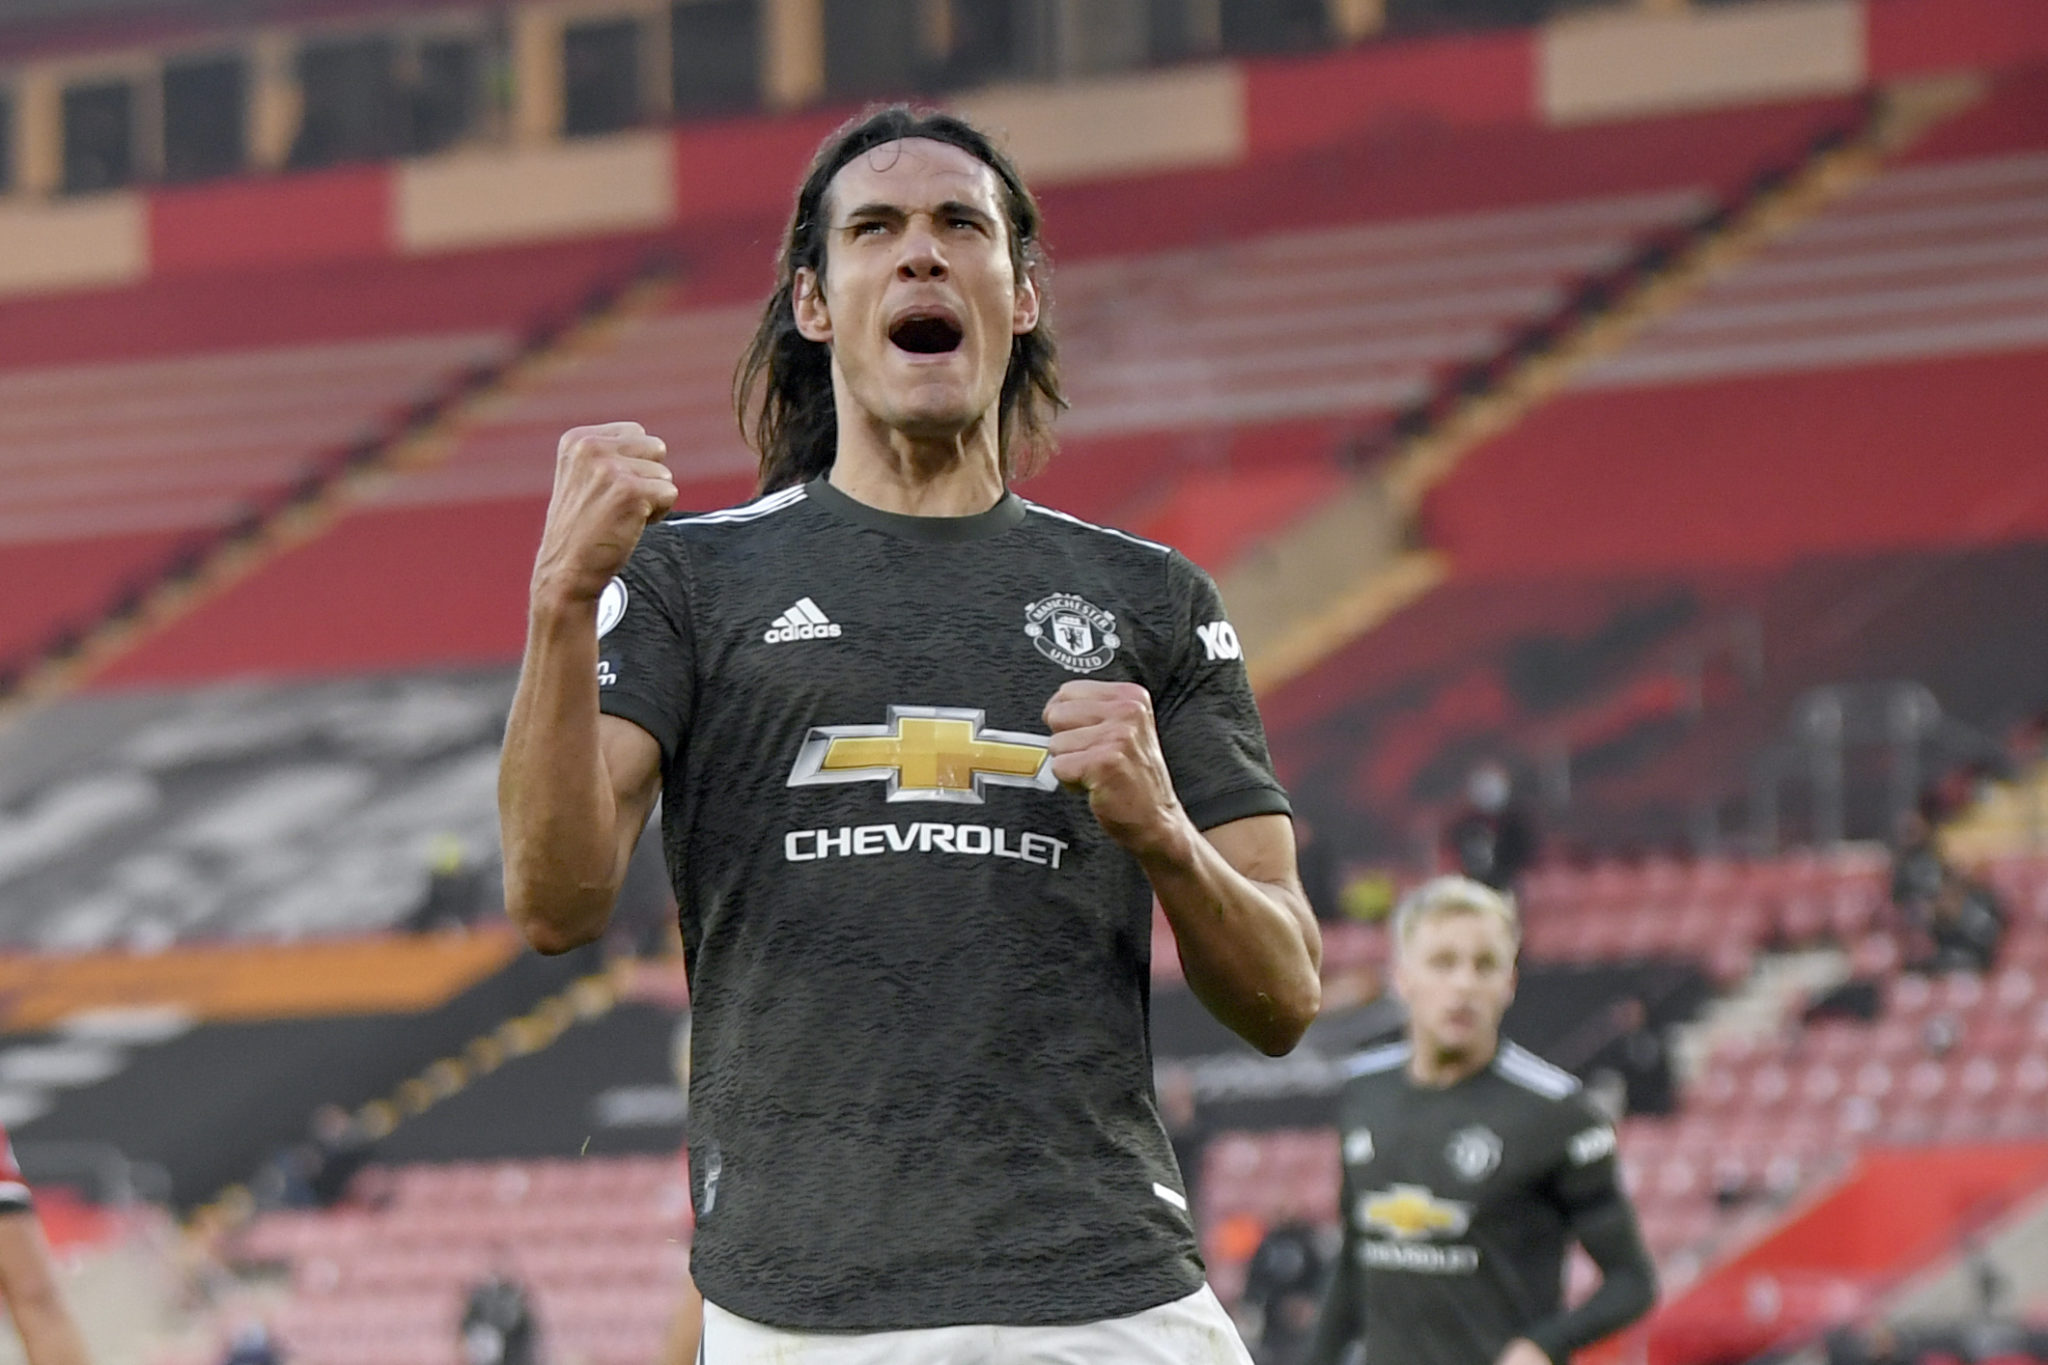 Cavani celebrates a goal at Old Trafford.